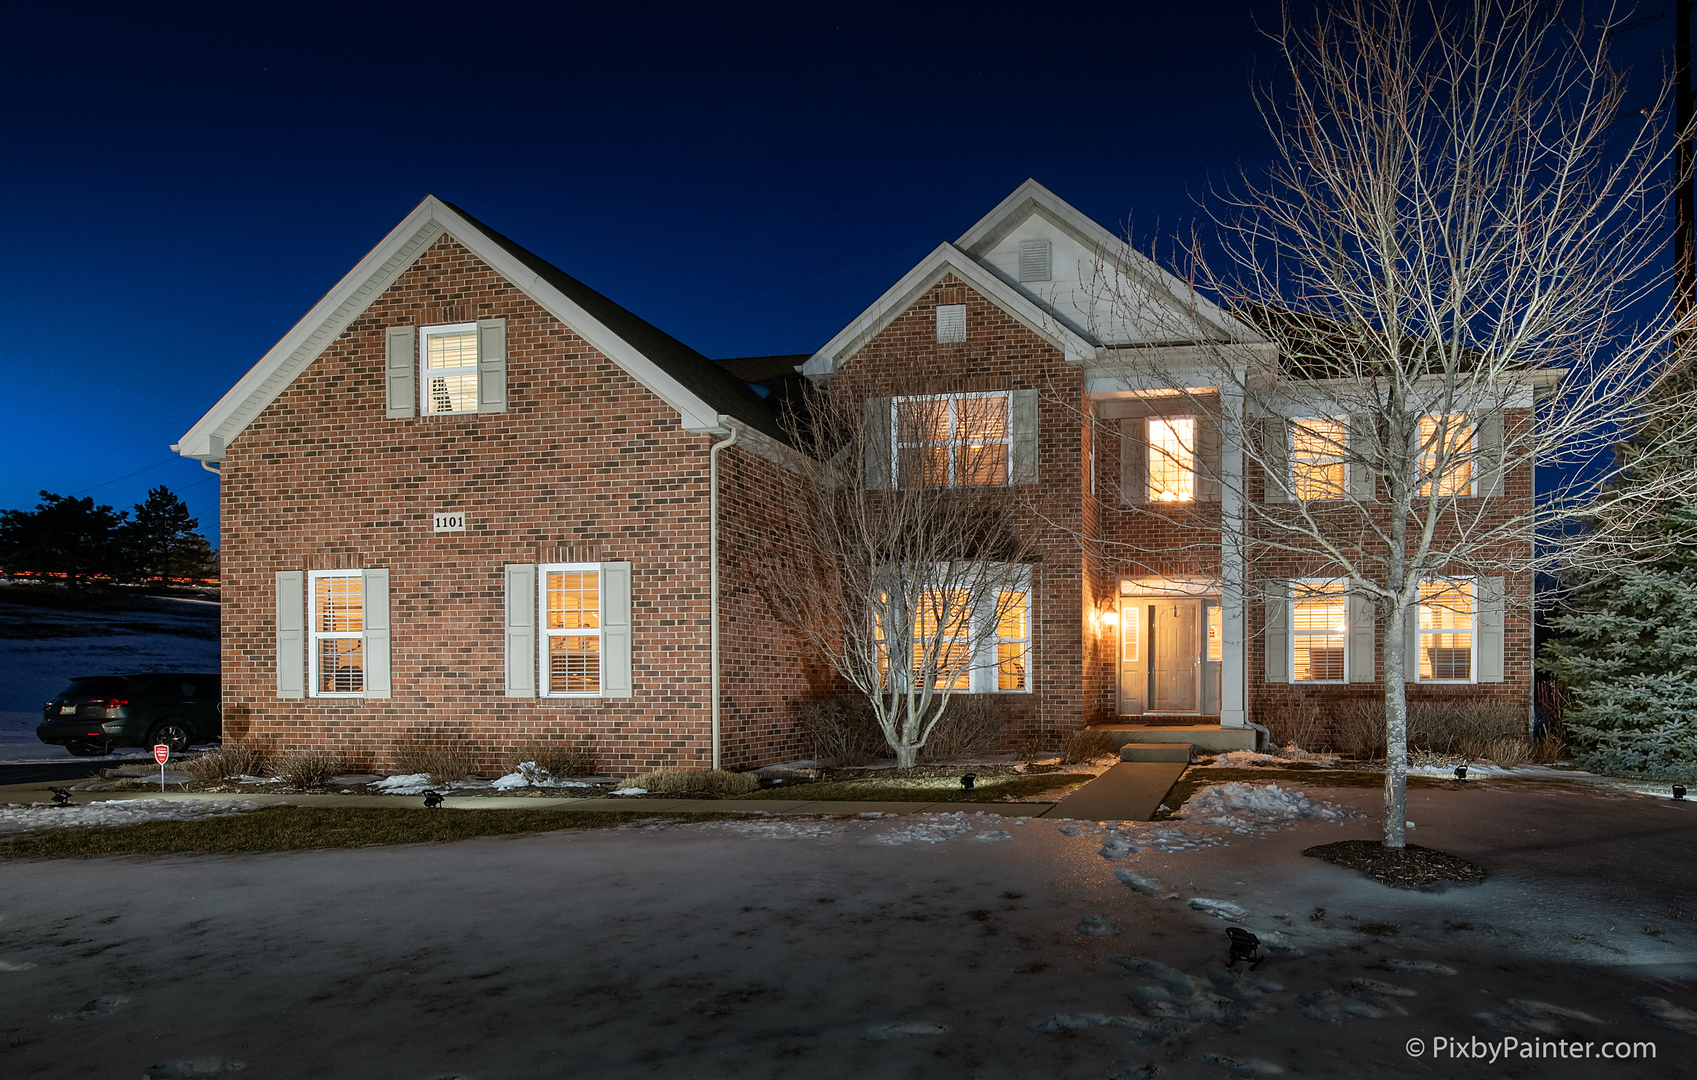 1101 Championship Drive 60124 - One of Elgin Homes for Sale